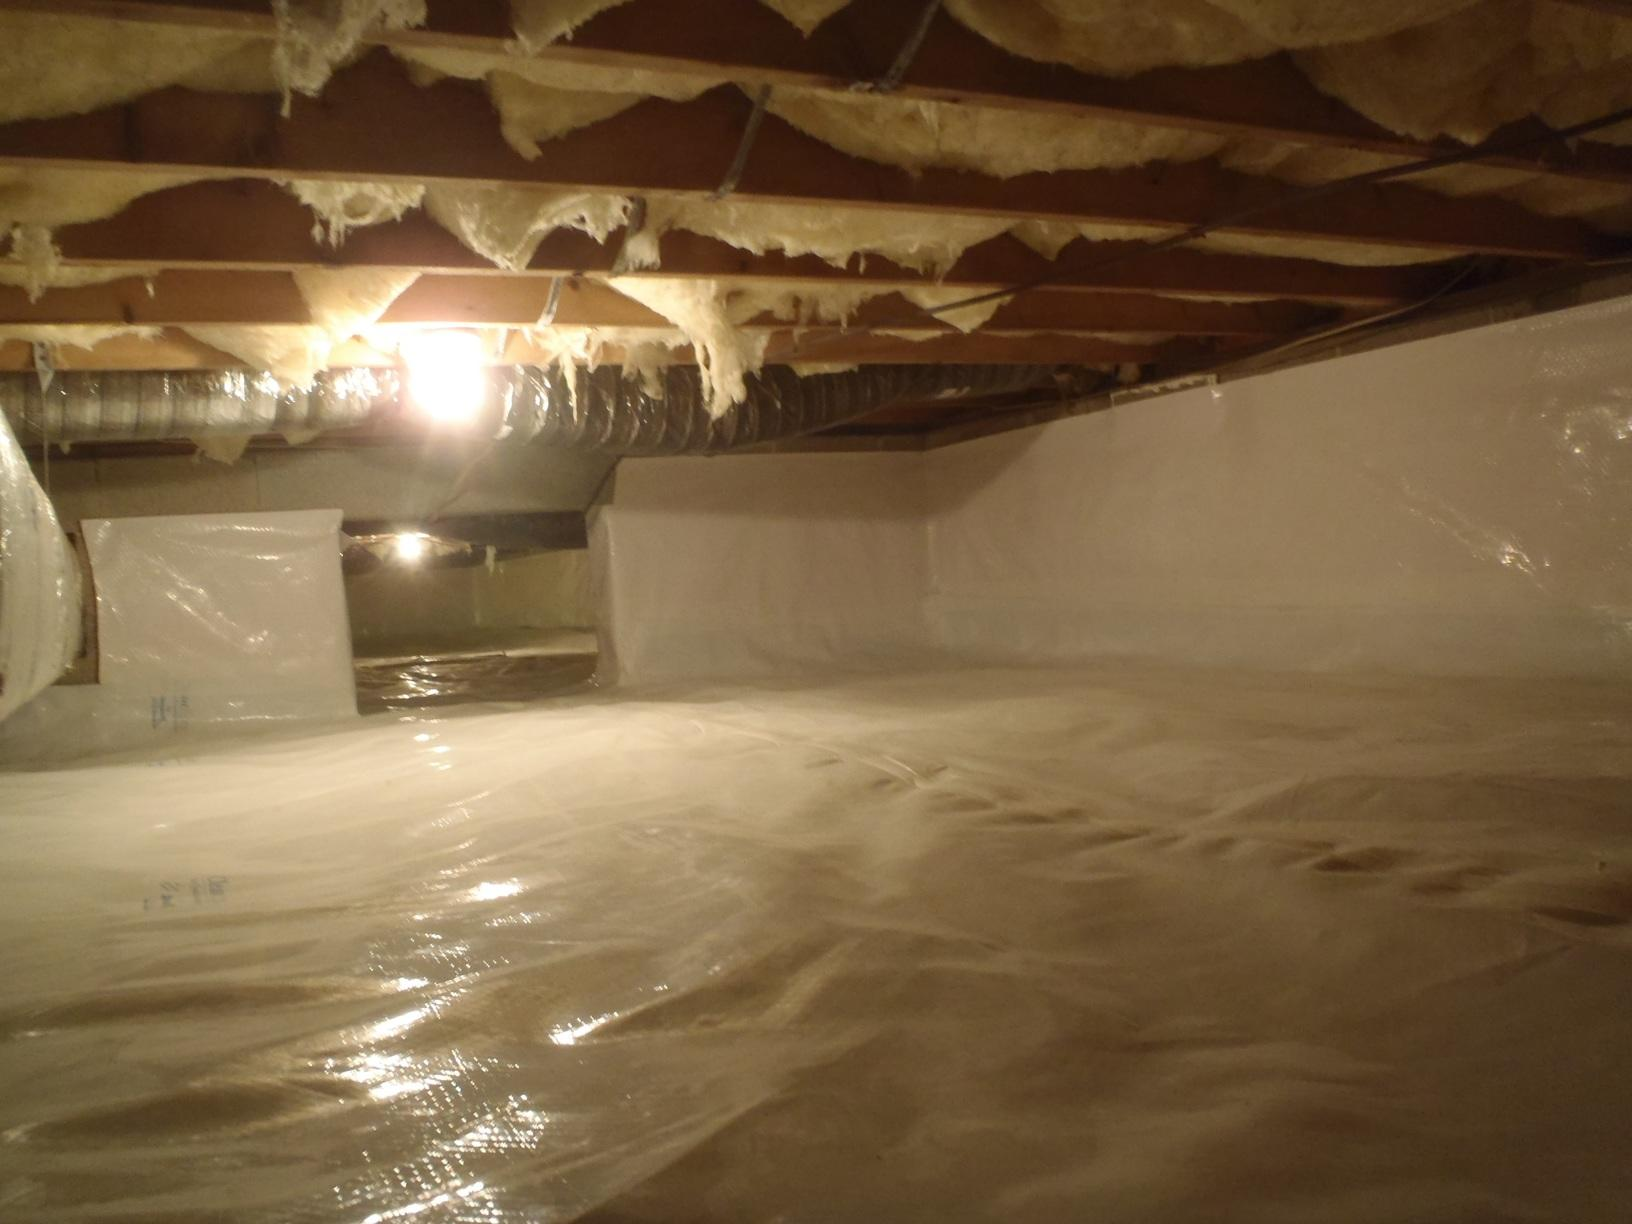 Crawl Space & Duct Cleaning in Centreville, MD. - After Photo